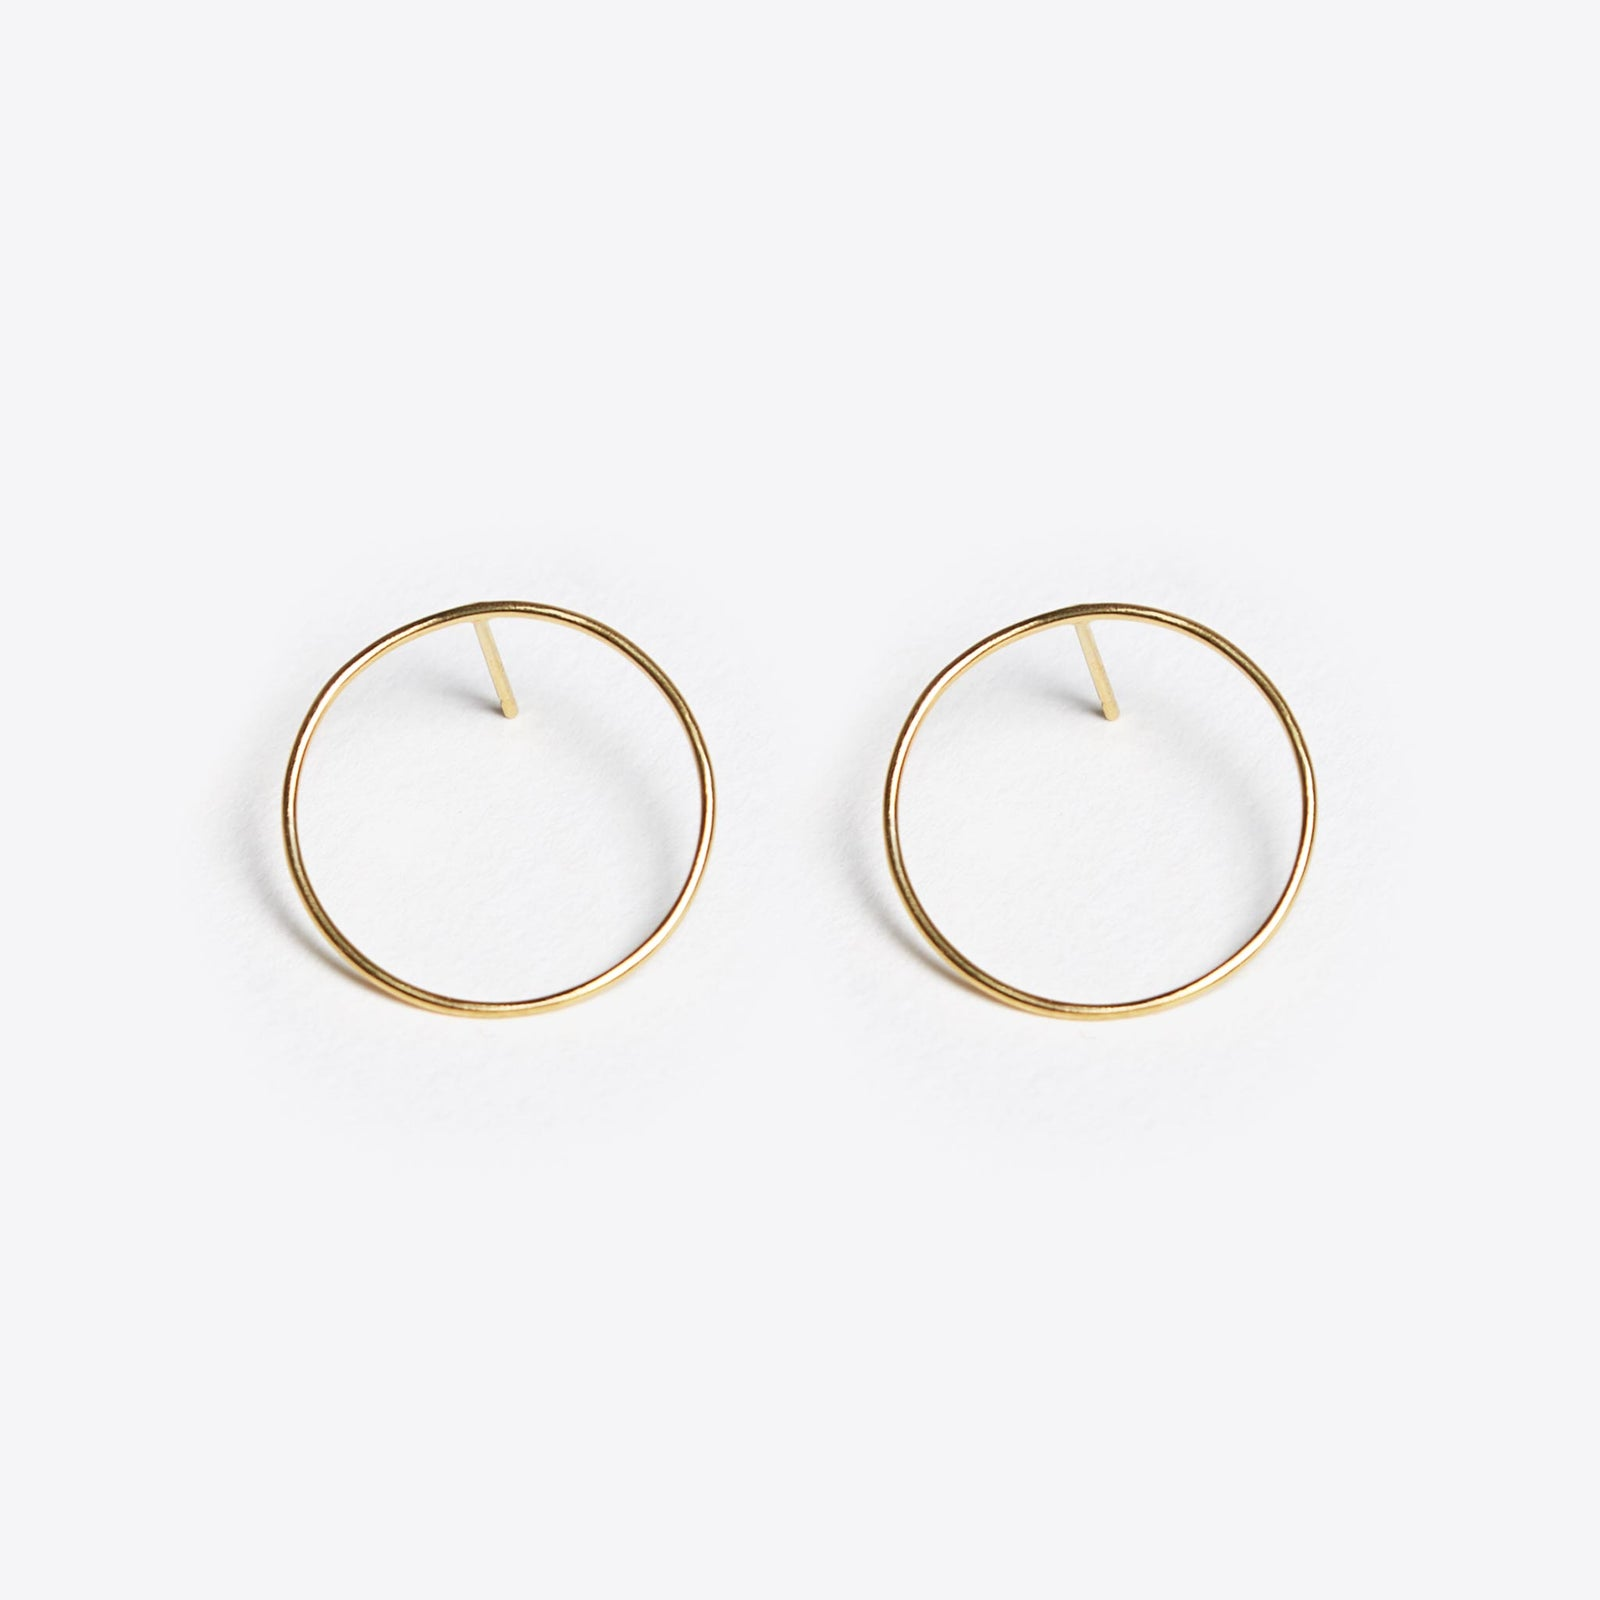 Wanderlust Life Ethically Handmade jewellery made in the UK. Minimalist gold and fine cord jewellery. unity circle hoop stud earring